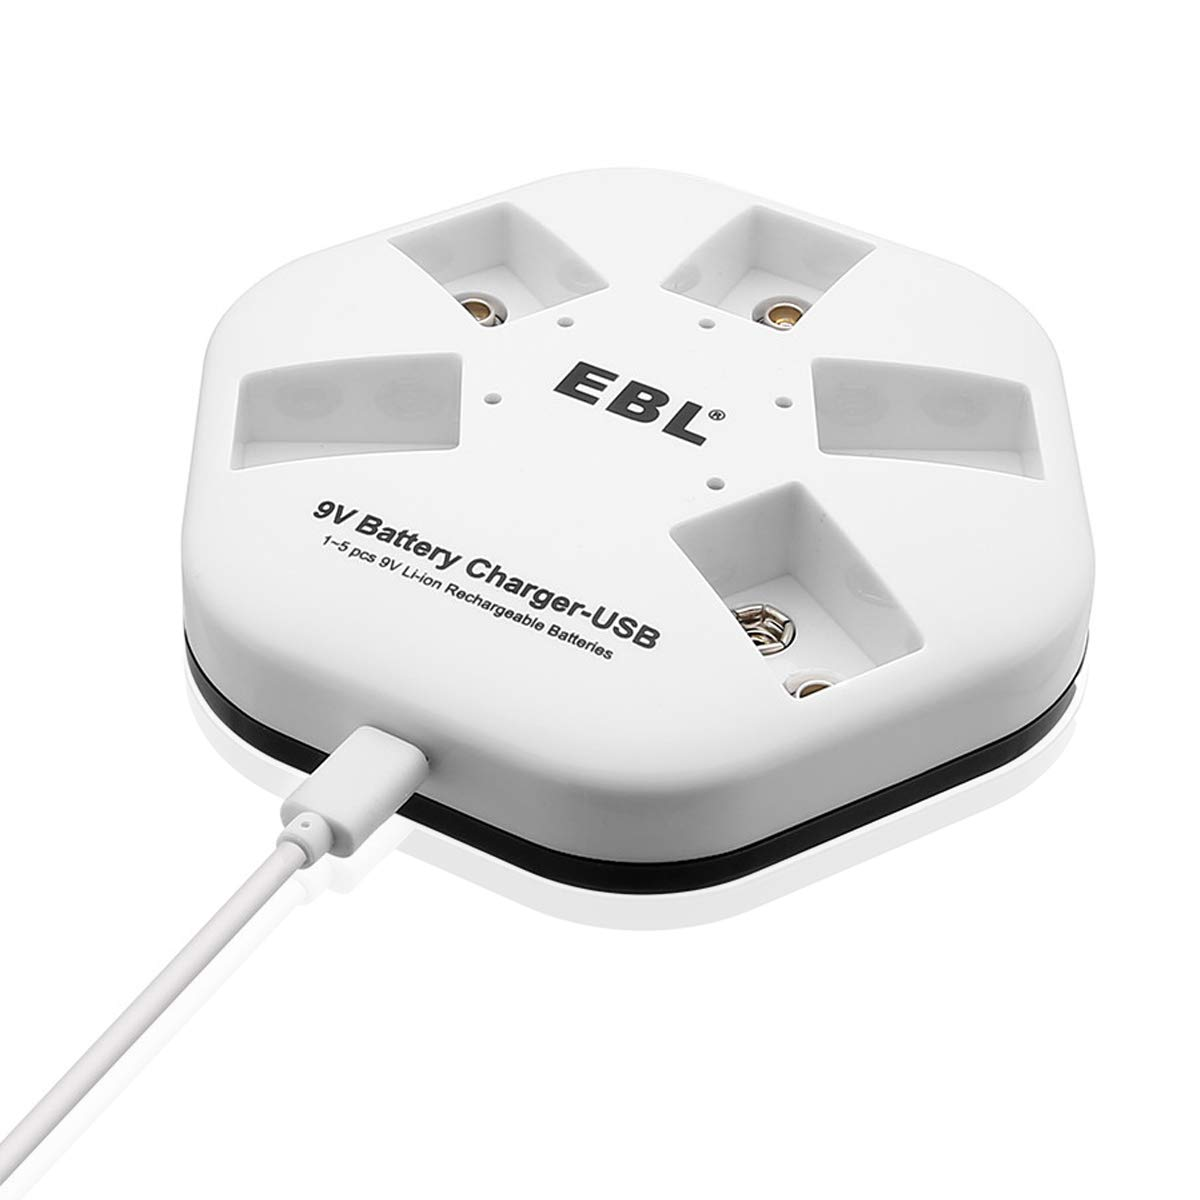 EBL 5 Bays USB Battery Charger for 9V 6F22 Lithium-ion: Amazon.co.uk ...